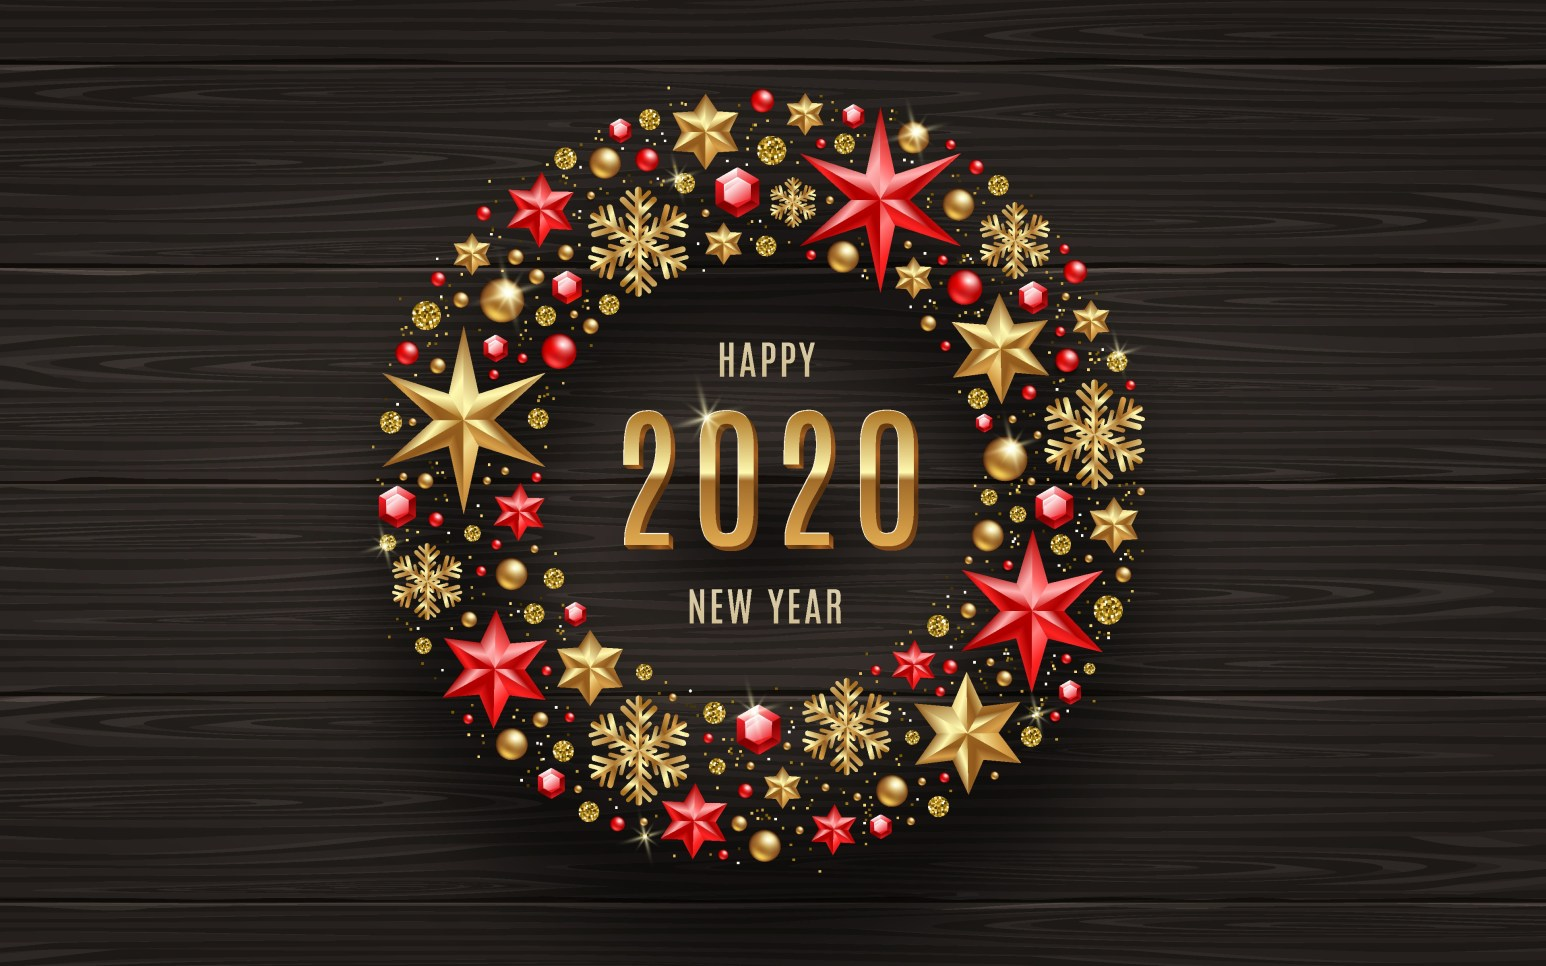 Happy 2020 New Year